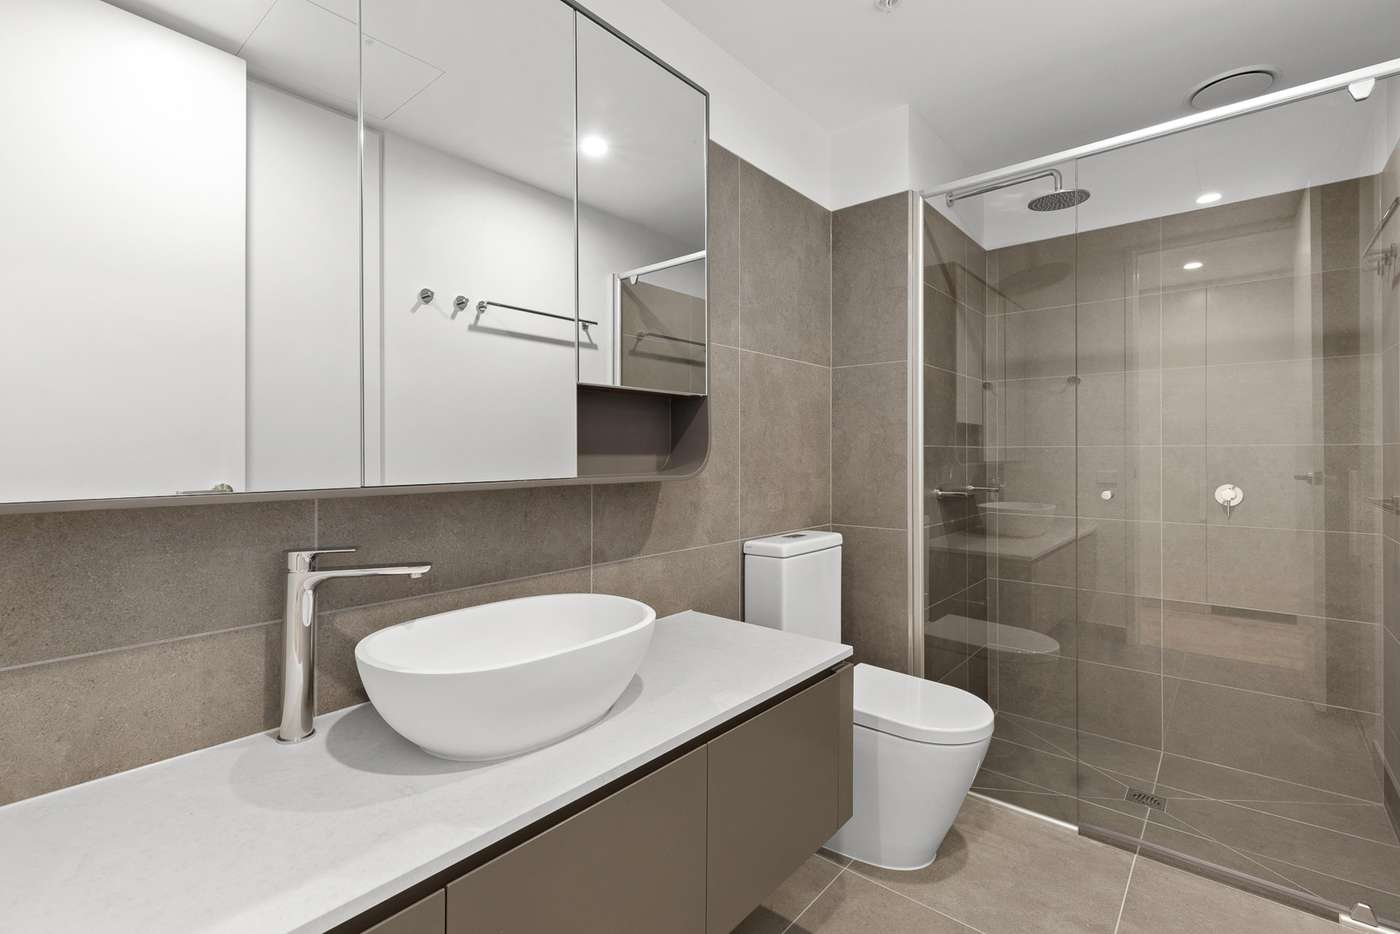 Fifth view of Homely apartment listing, 312/11-15 Brunswick Road, Brunswick East VIC 3057